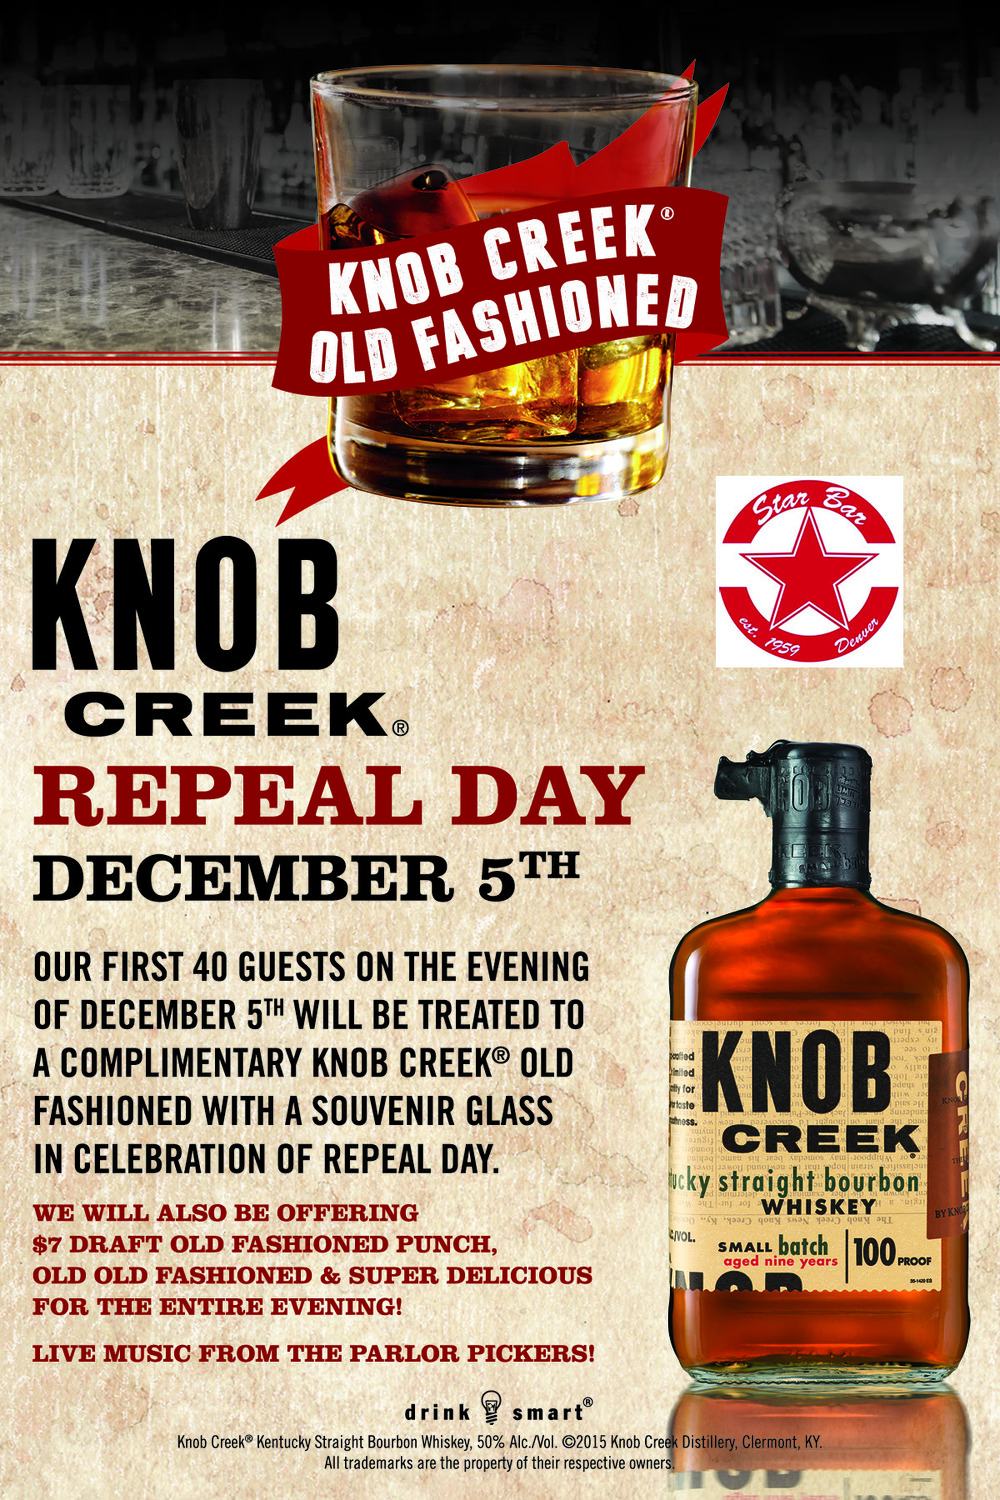 BEA_1390908_KC_RepealDay_Digital_4x6_R1_StarBar.jpg